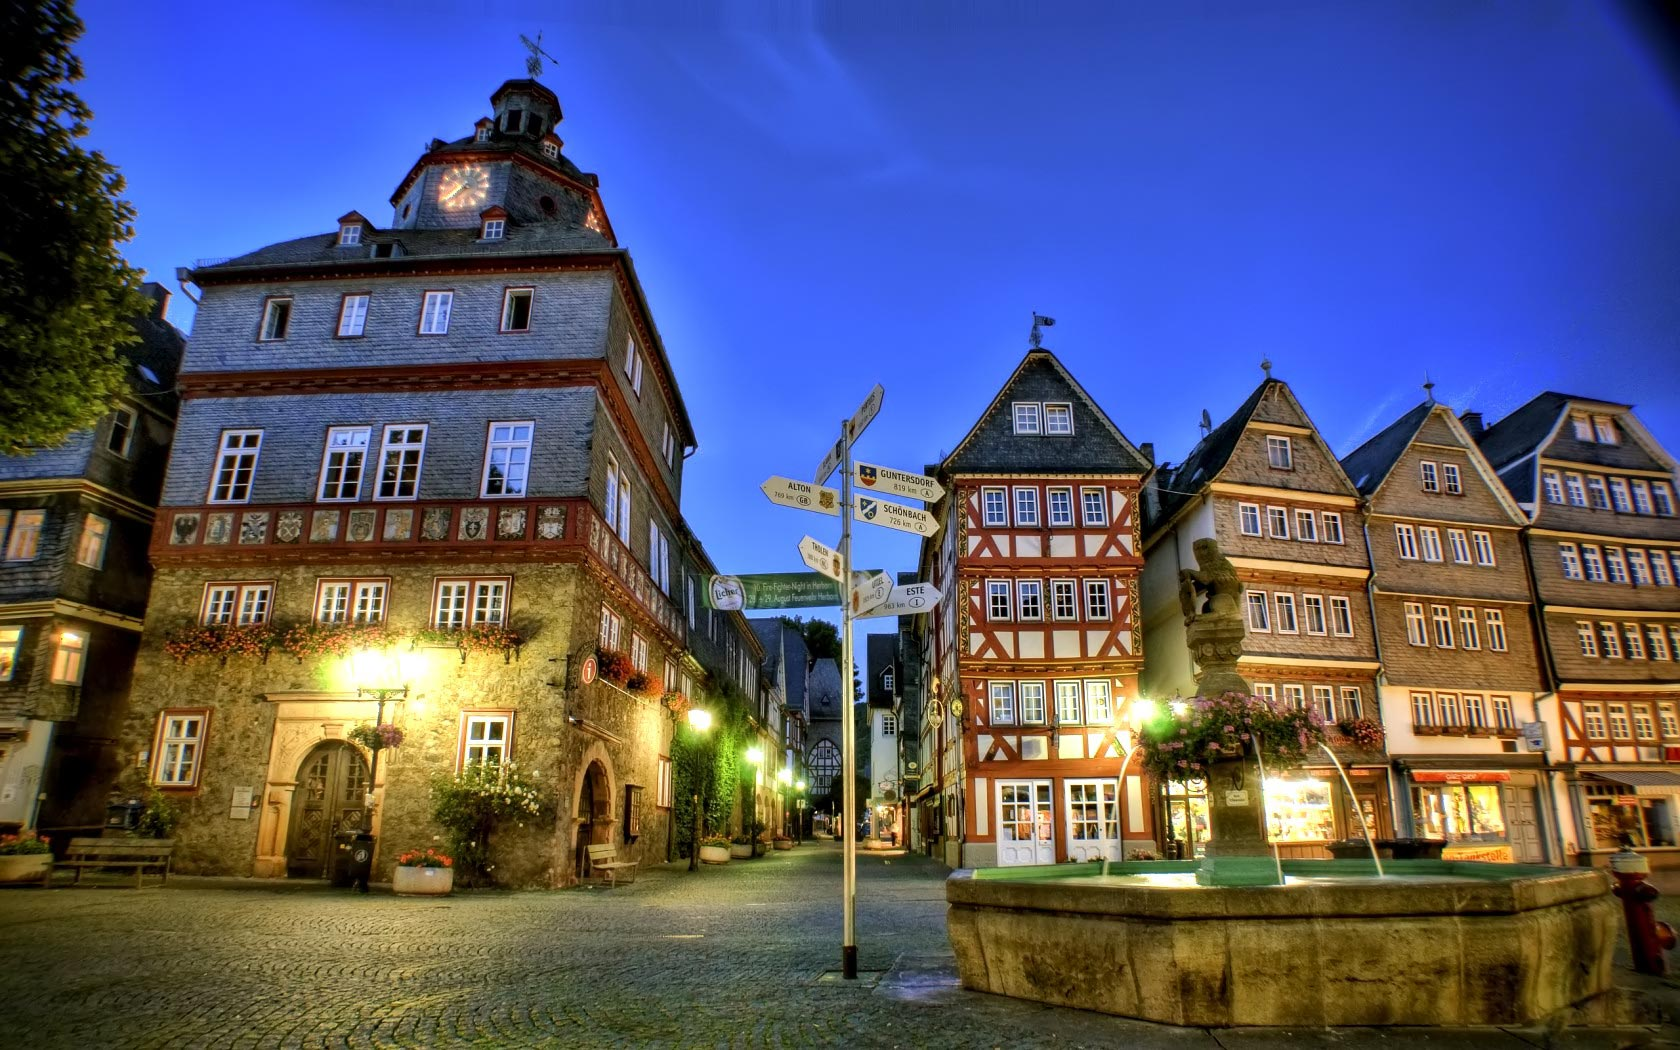 Herborn Germany Desktop hd Wallpaper High Quality Wallpapers 1680x1050